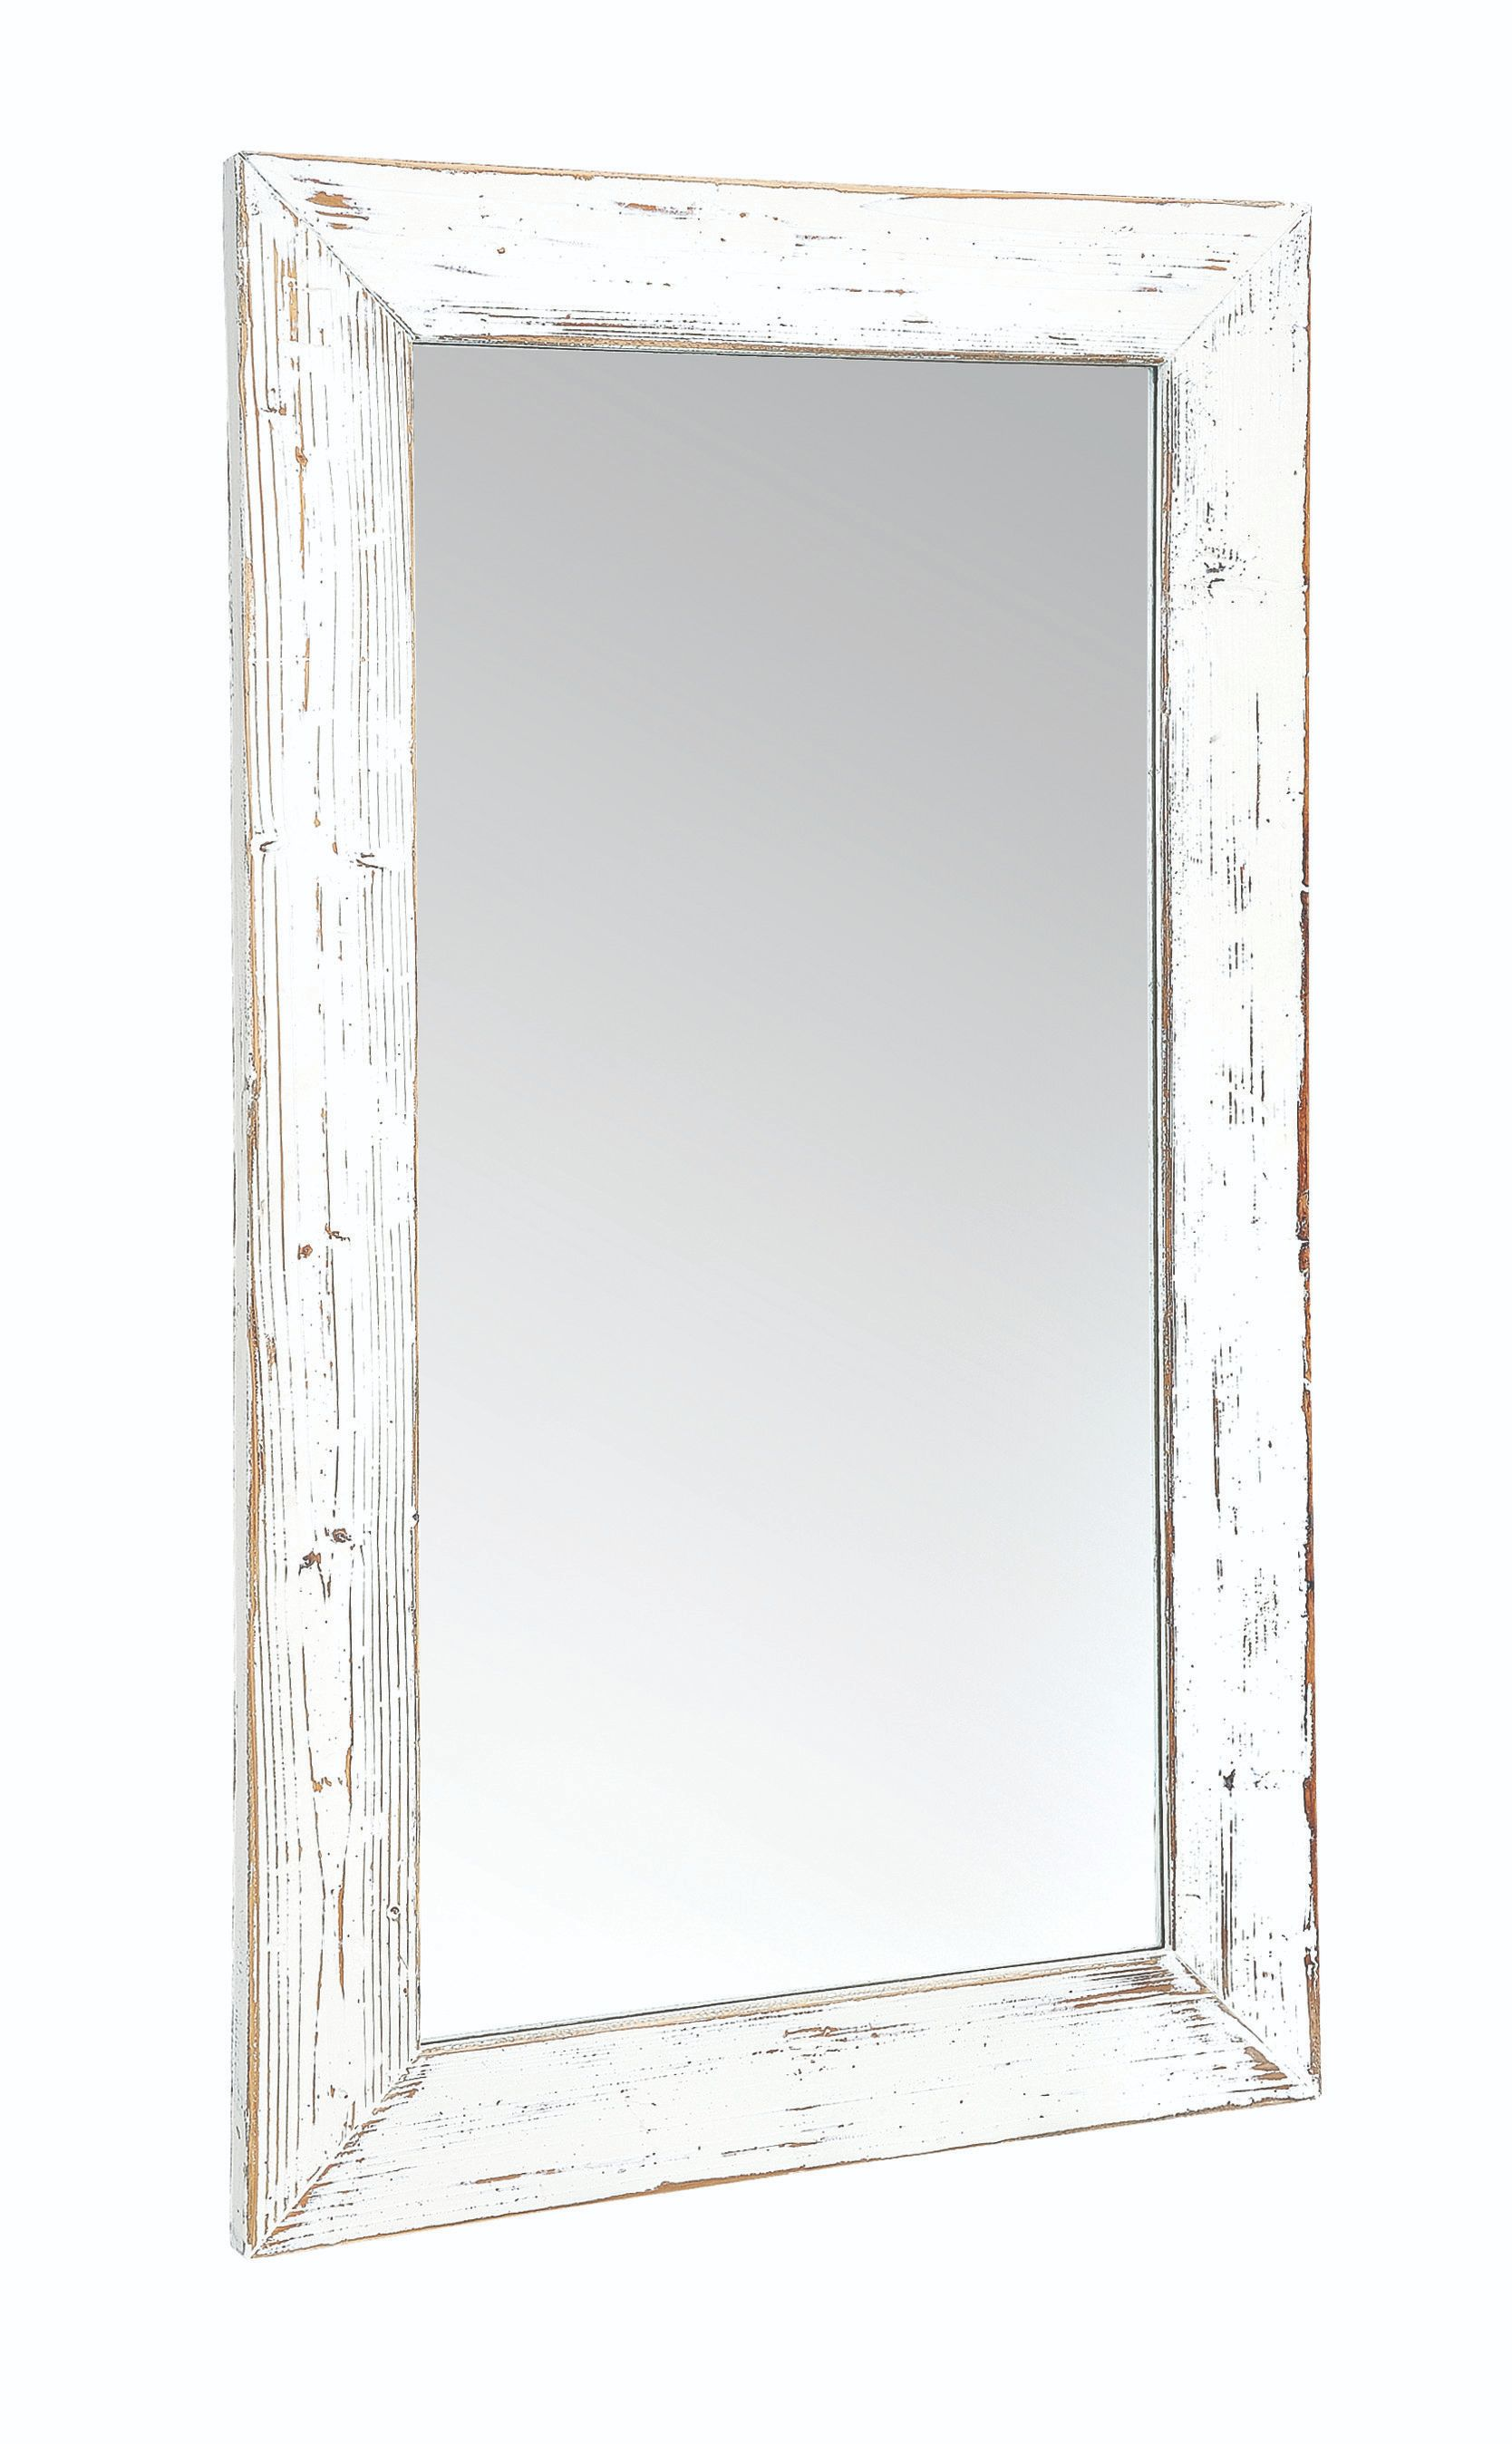 PURBECK WALL MIRROR Distressed Paint & Driftwood